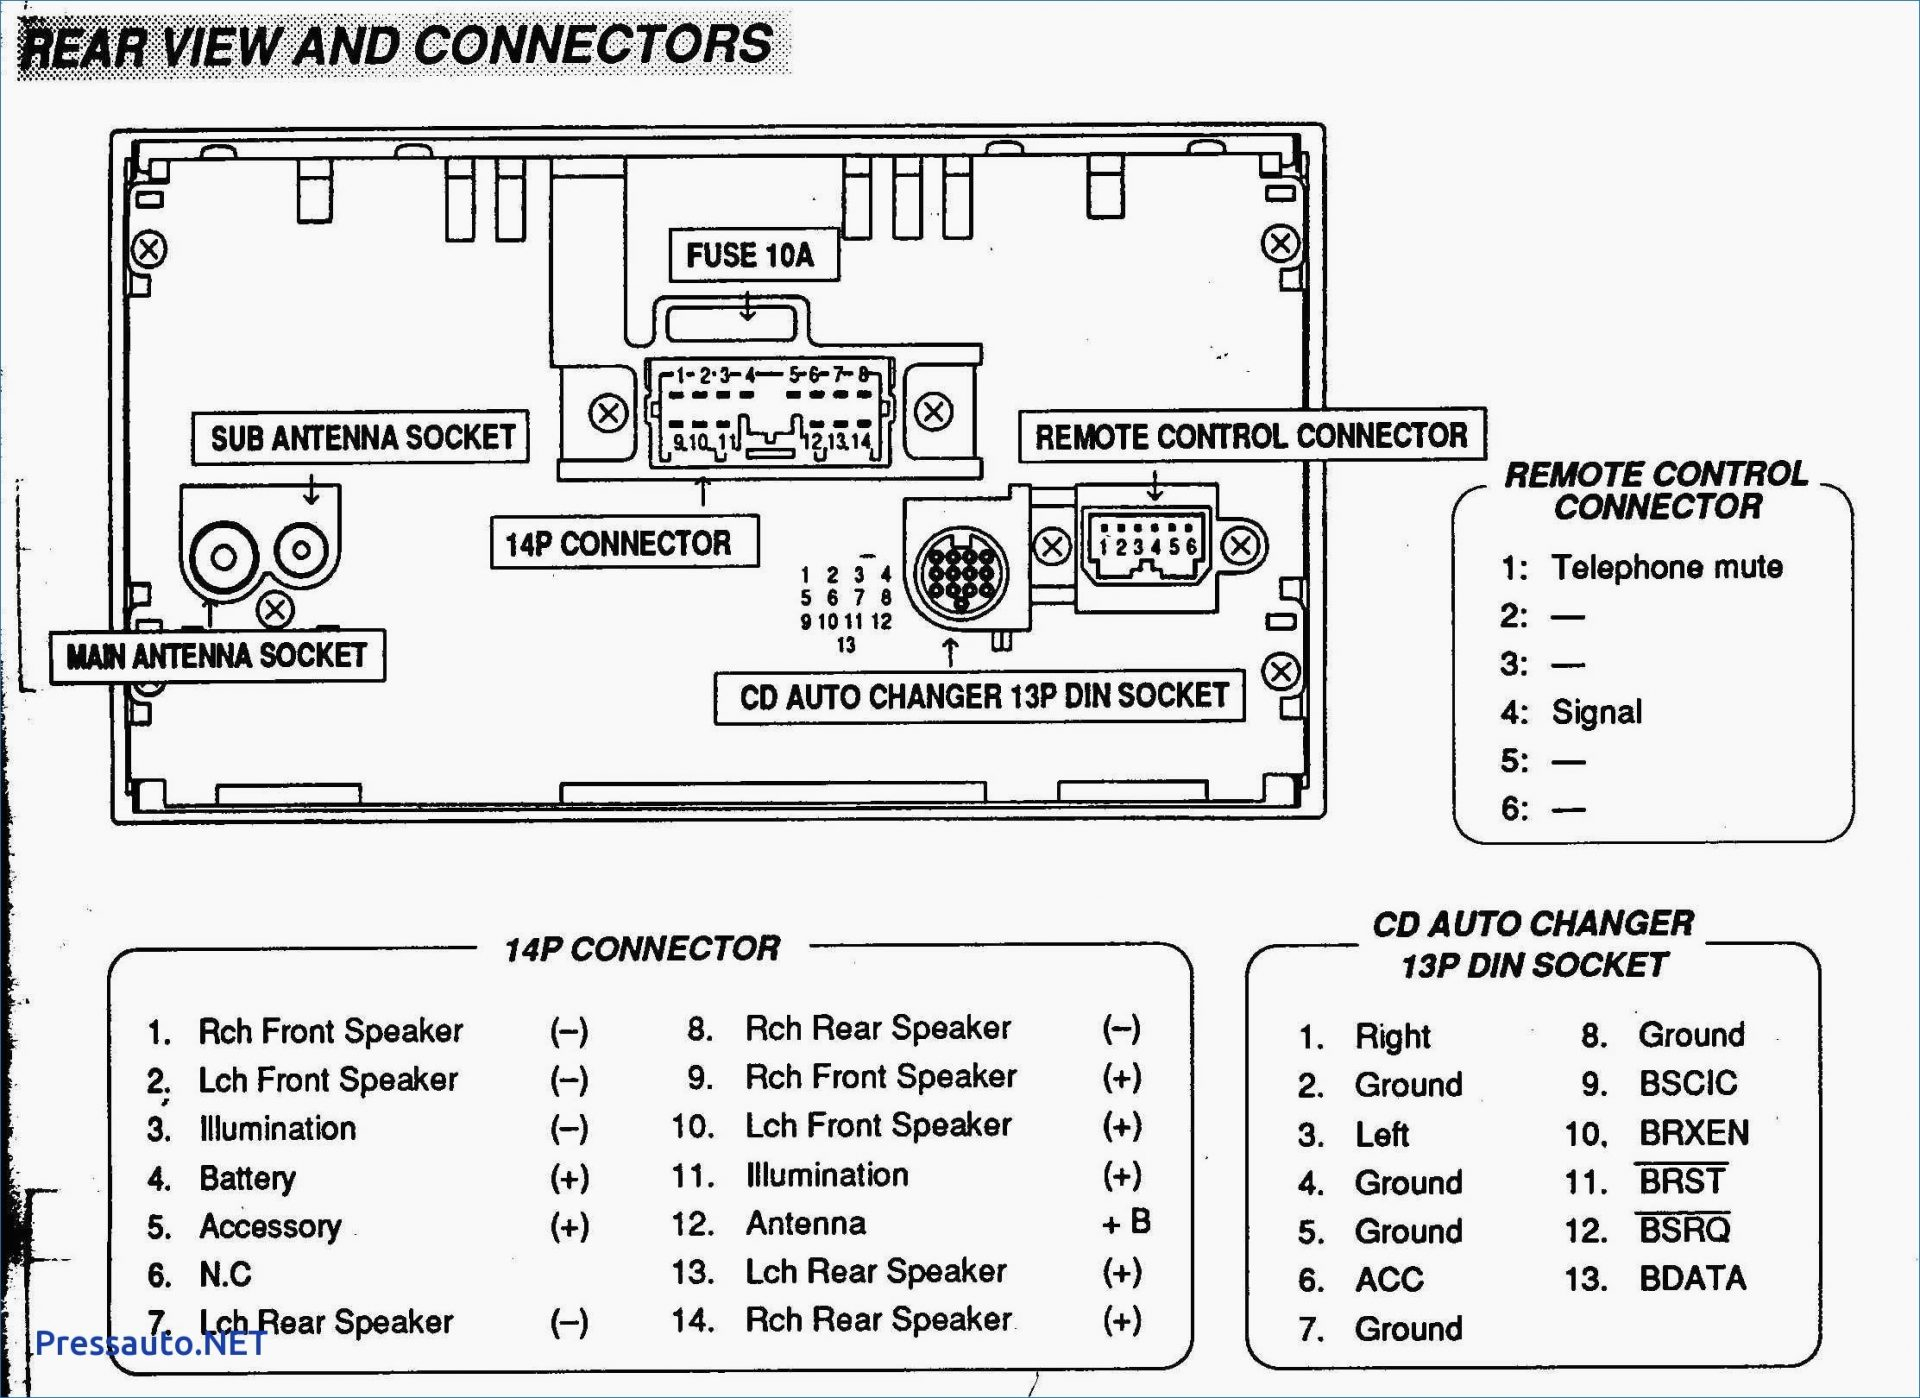 bogen paging system wiring diagram Download-Bogen Paging System Wiring Diagram Inspirational fortable Pa Speaker Wiring Diagrams Electrical Circuit 15-a